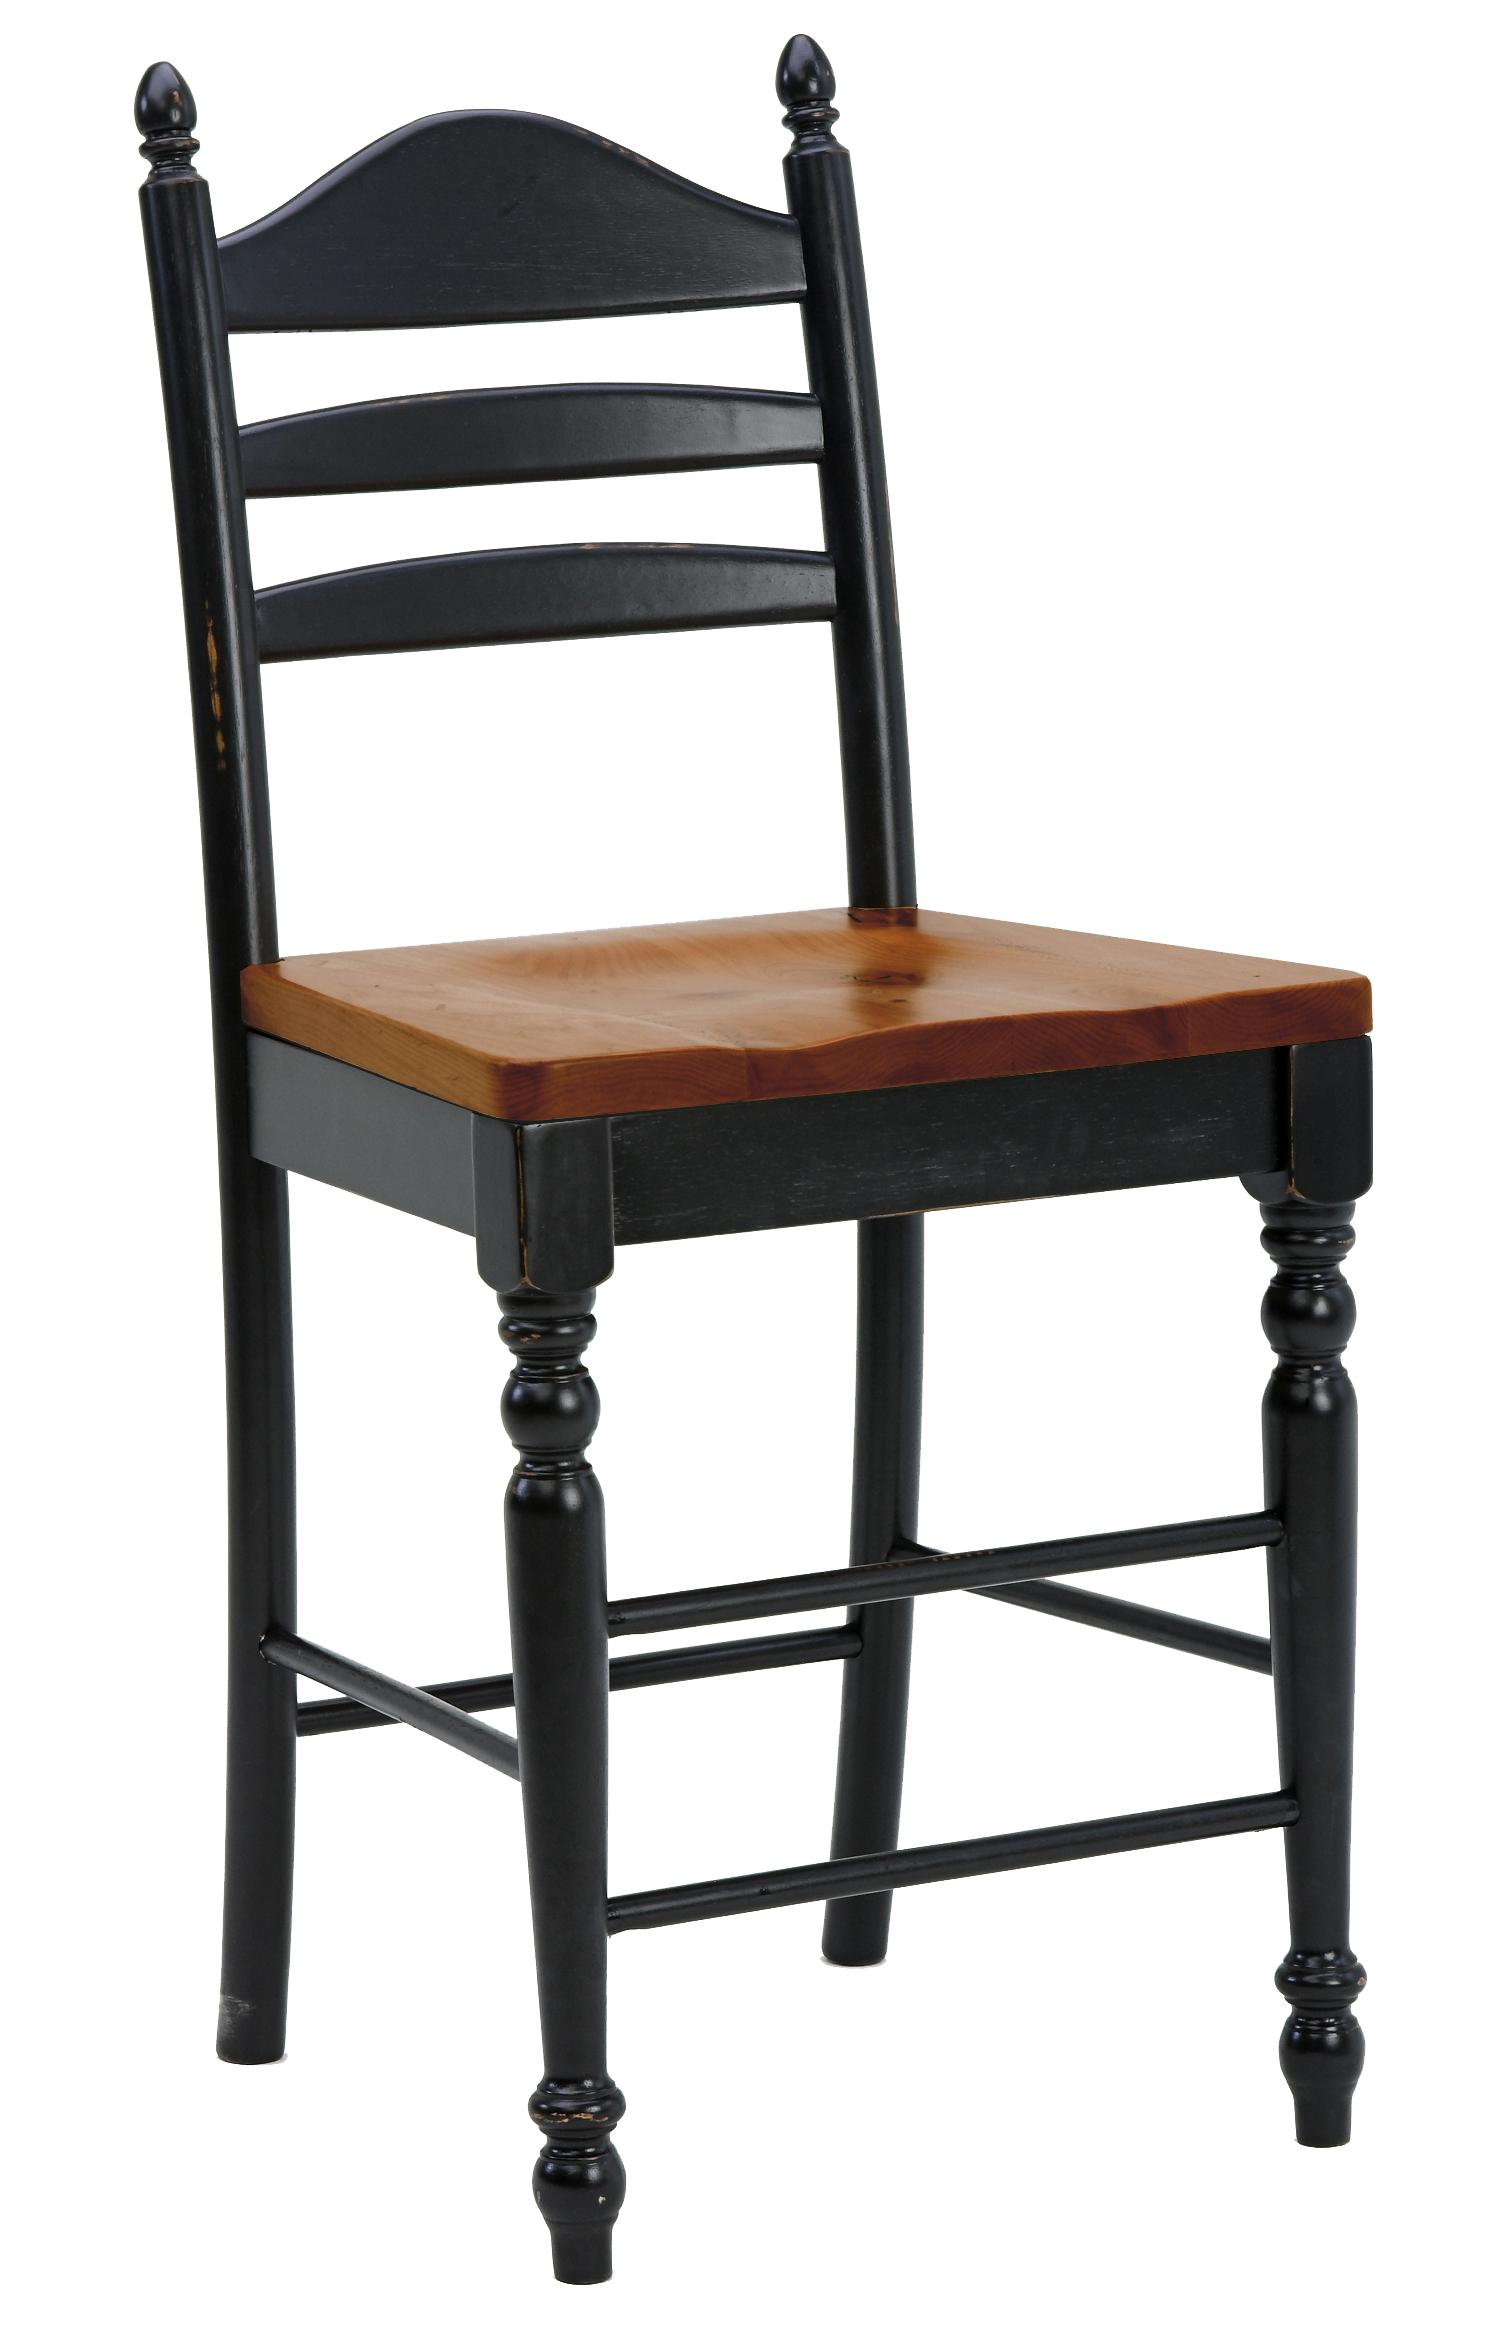 "Intercon Hillside Village 30"" Ladder Back Bar Stool - Item Number: HV-BS-489W-BCH-K30"